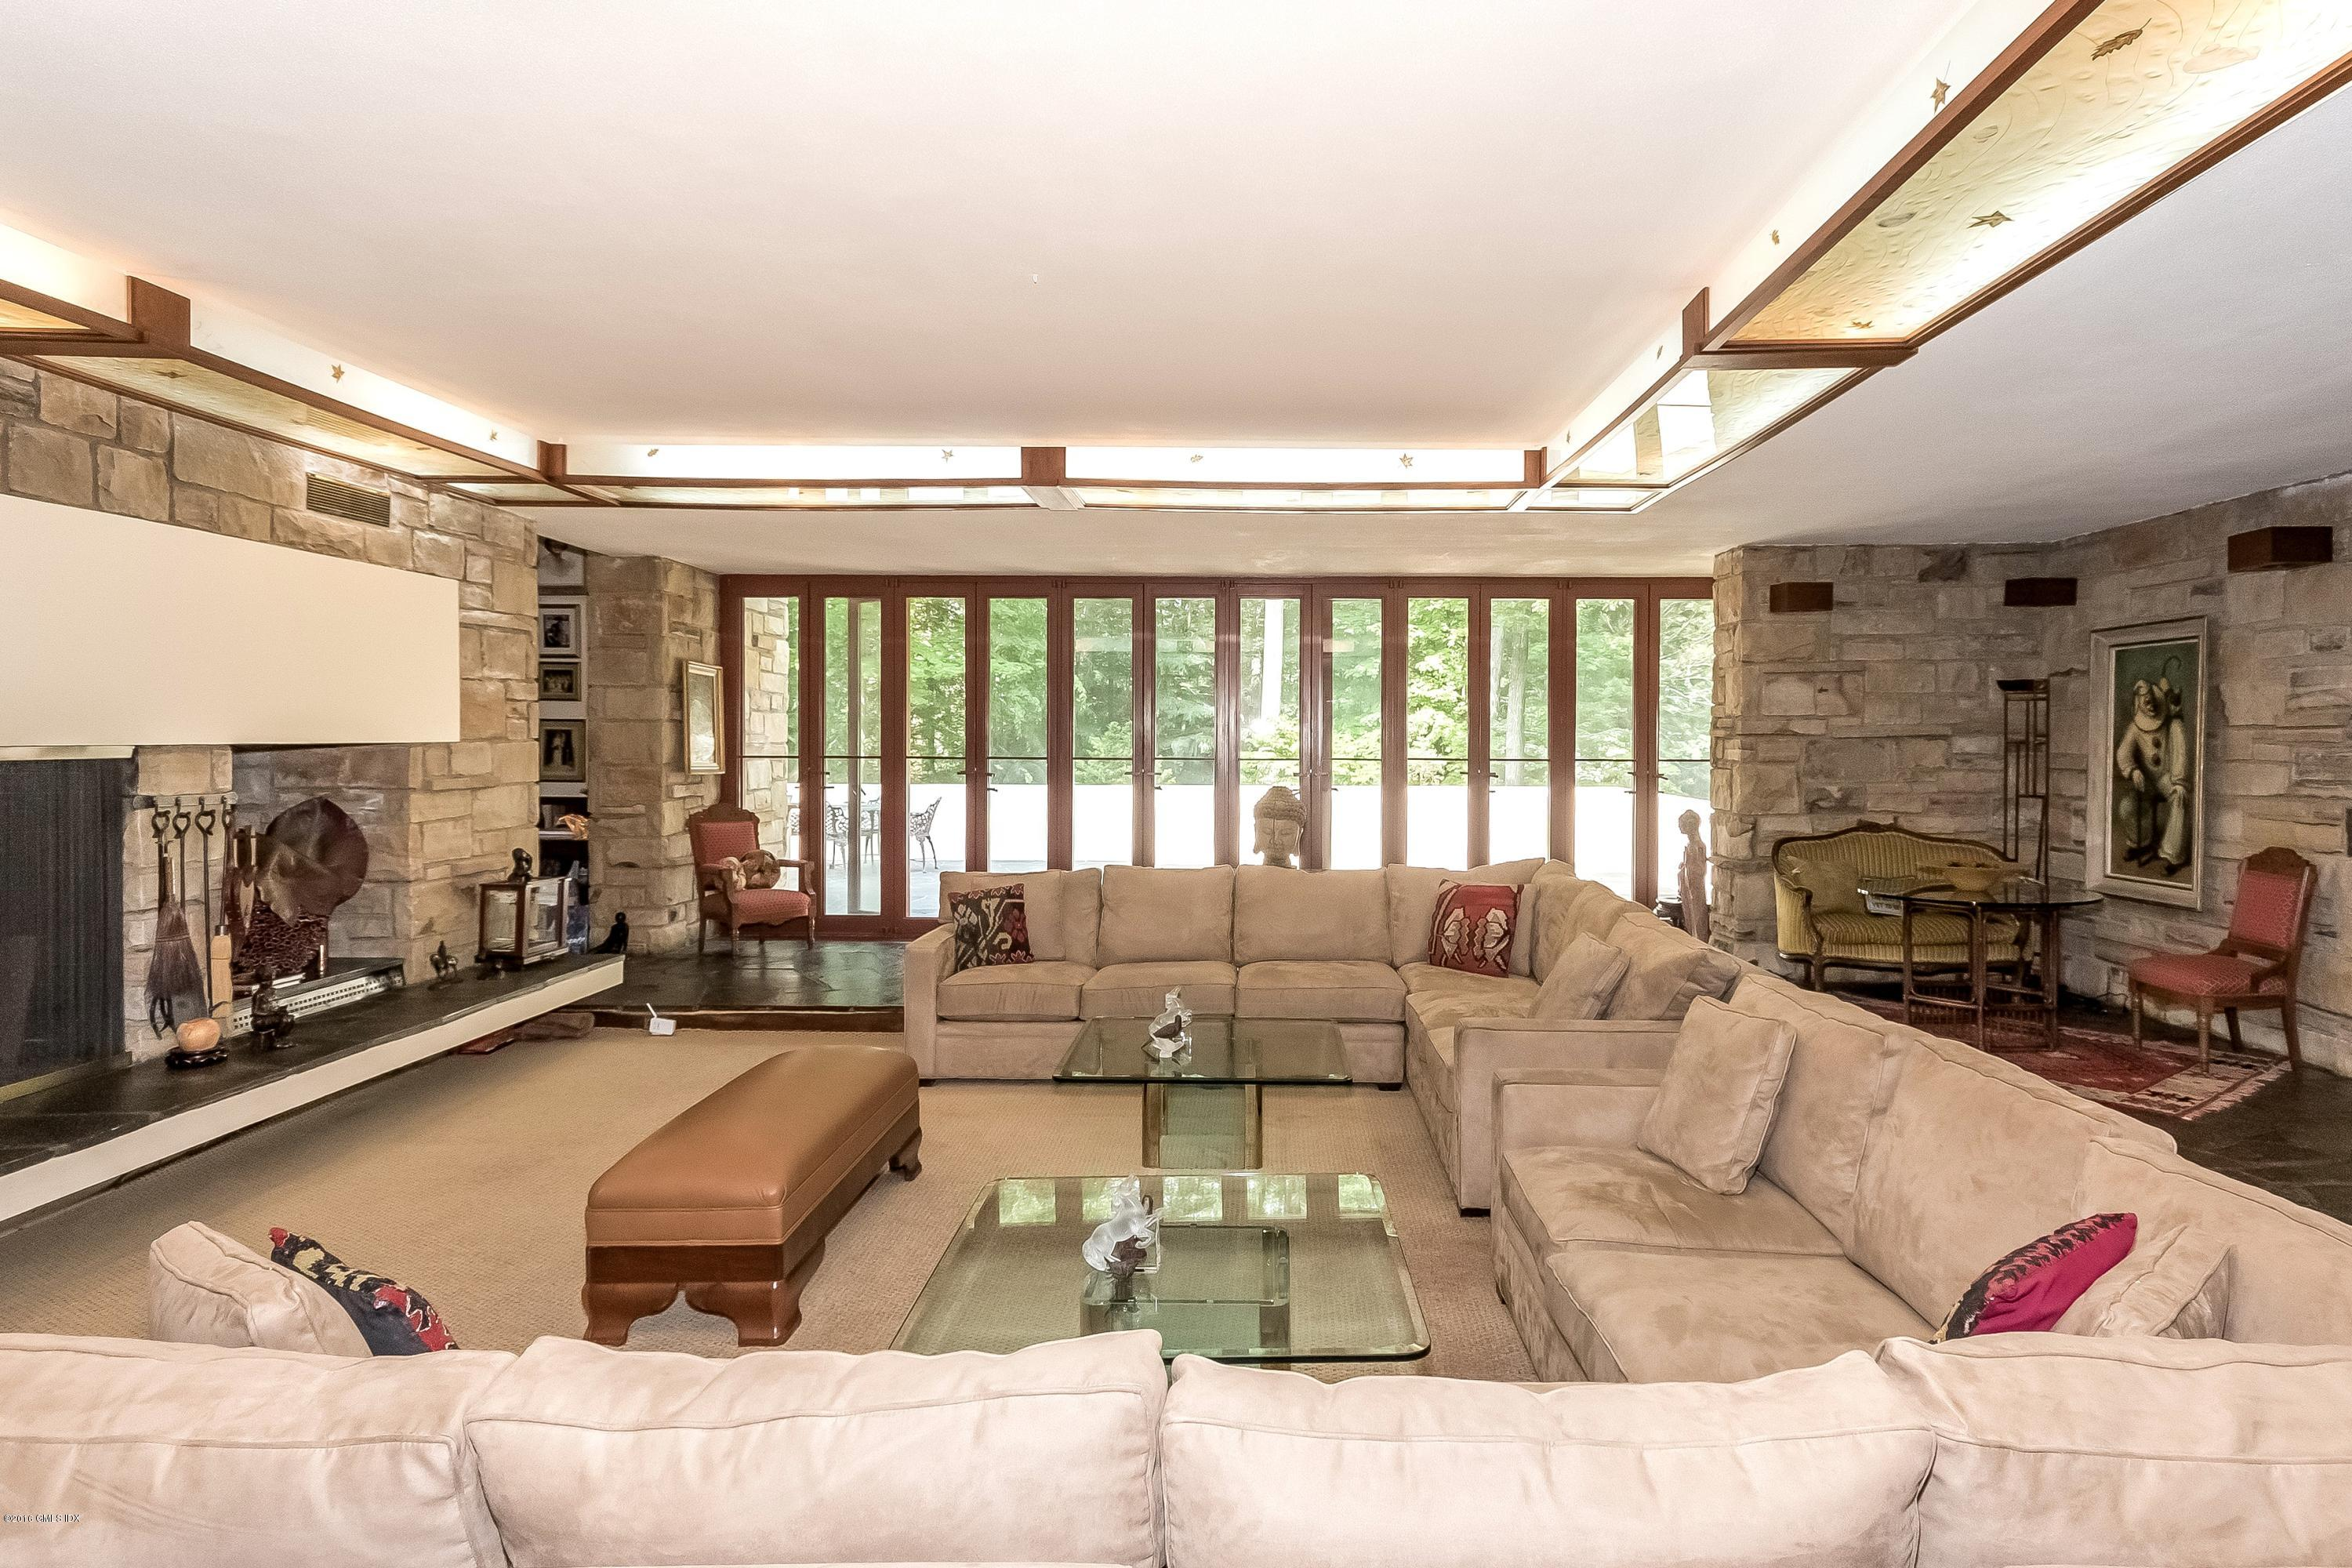 3970s fallingwater inspired home asks 35m curbed for Home gallery furniture hours